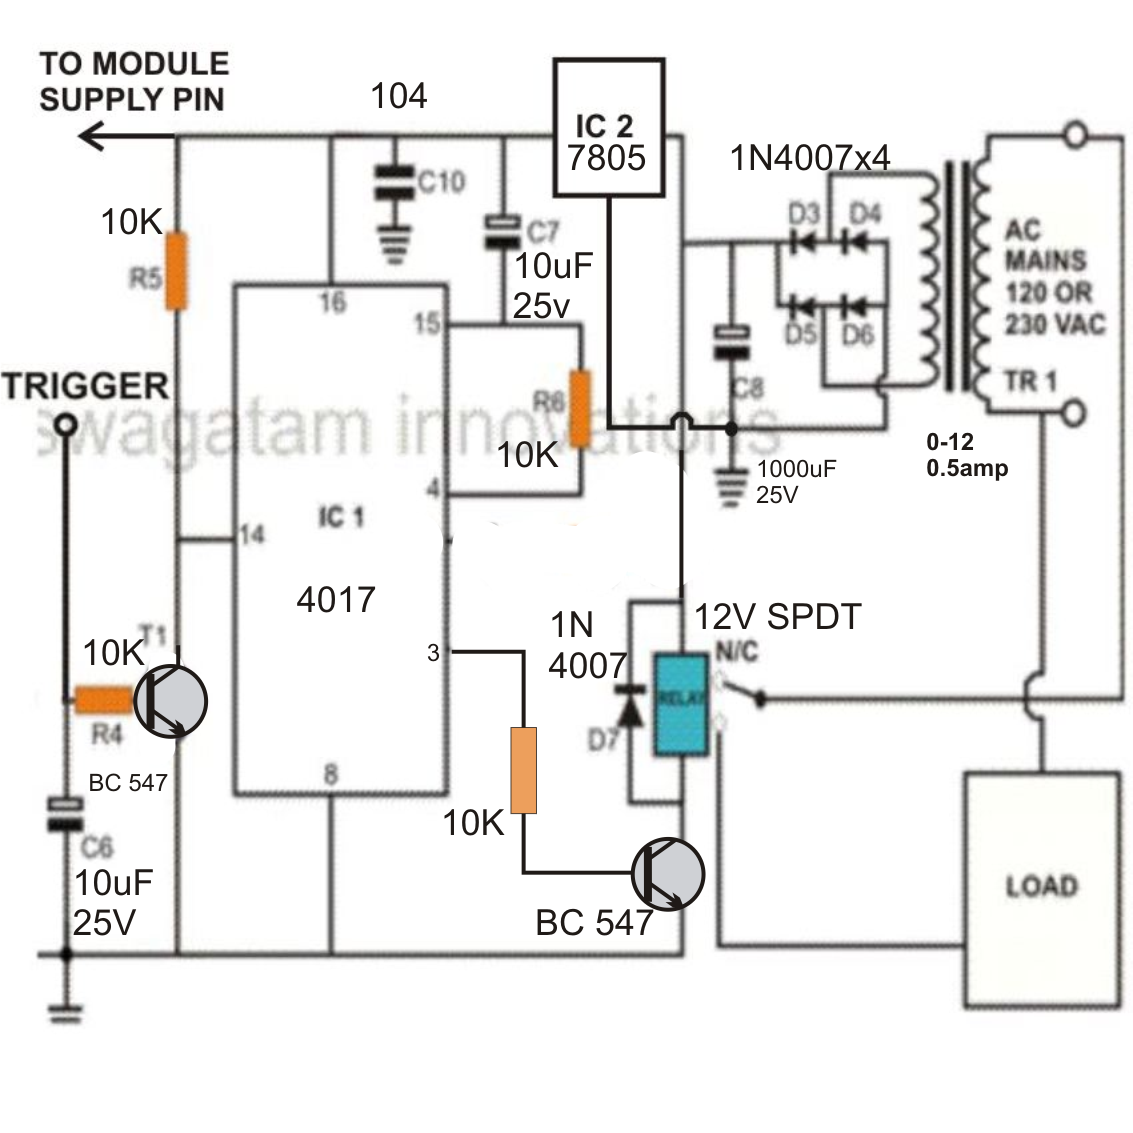 File Electrical Symbols IEC furthermore 165225880059261285 further Dc Dimmer Switch Wiring Diagram additionally Wiring additionally 2009 Mack Fuse Box Diagram. on wiring diagram for 1 lamp 2 switches